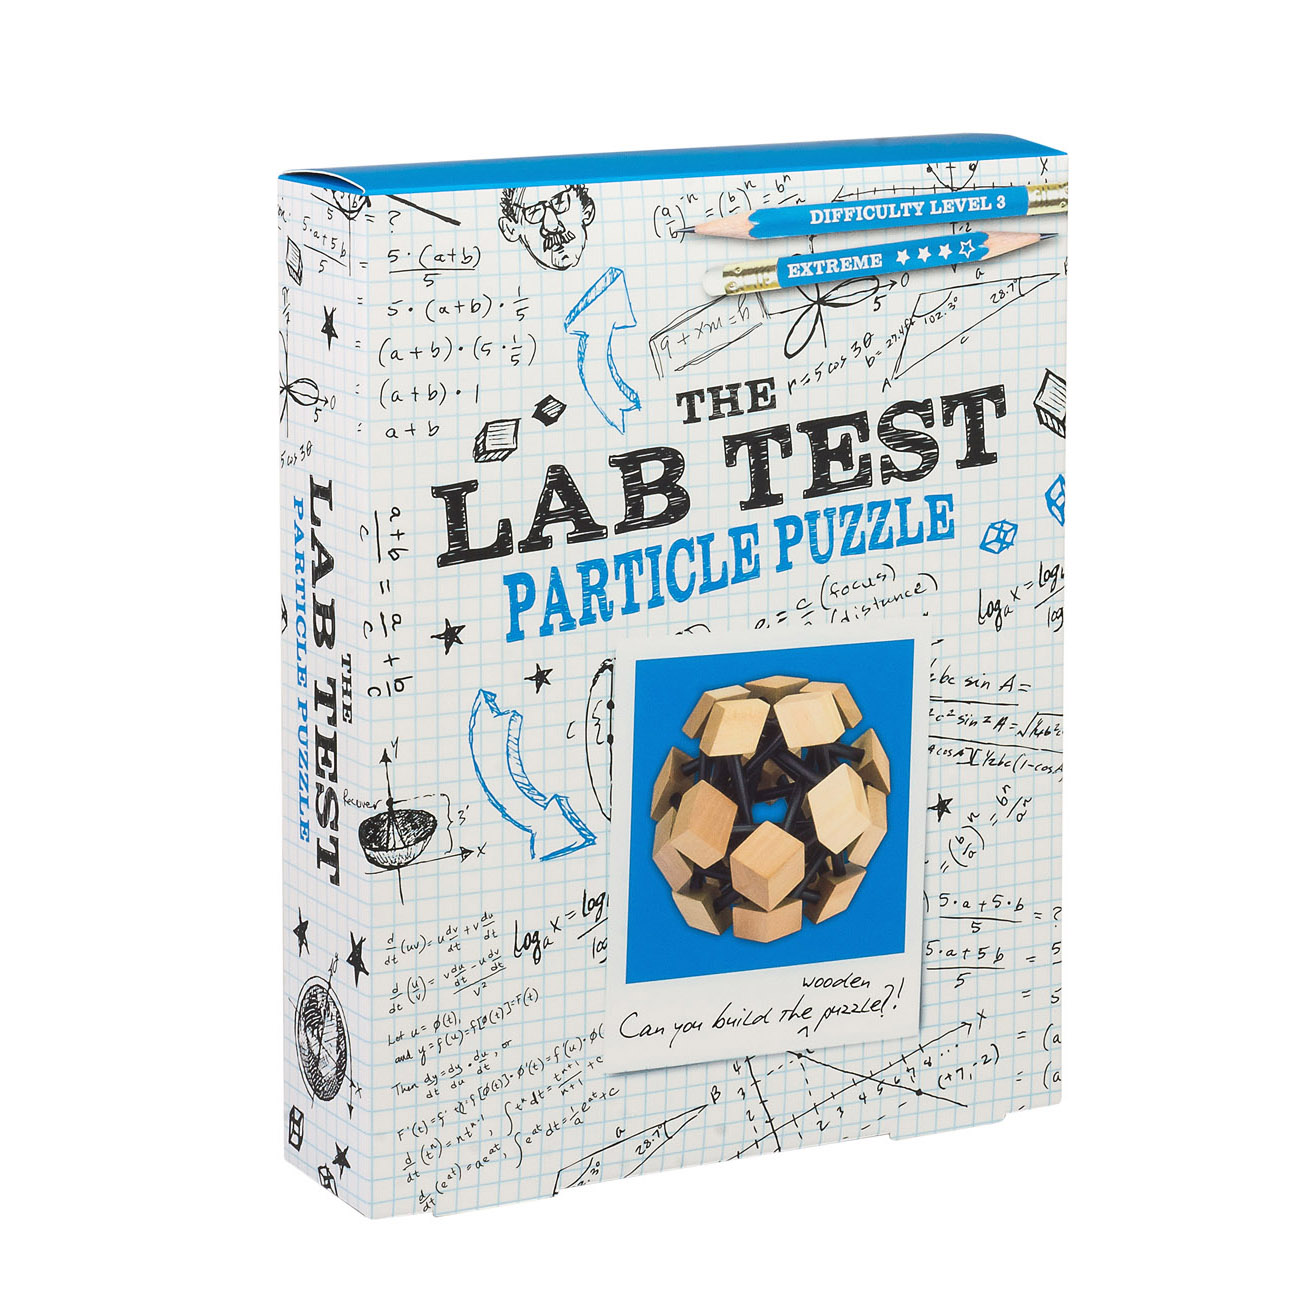 1392 - Lab Test - Particle